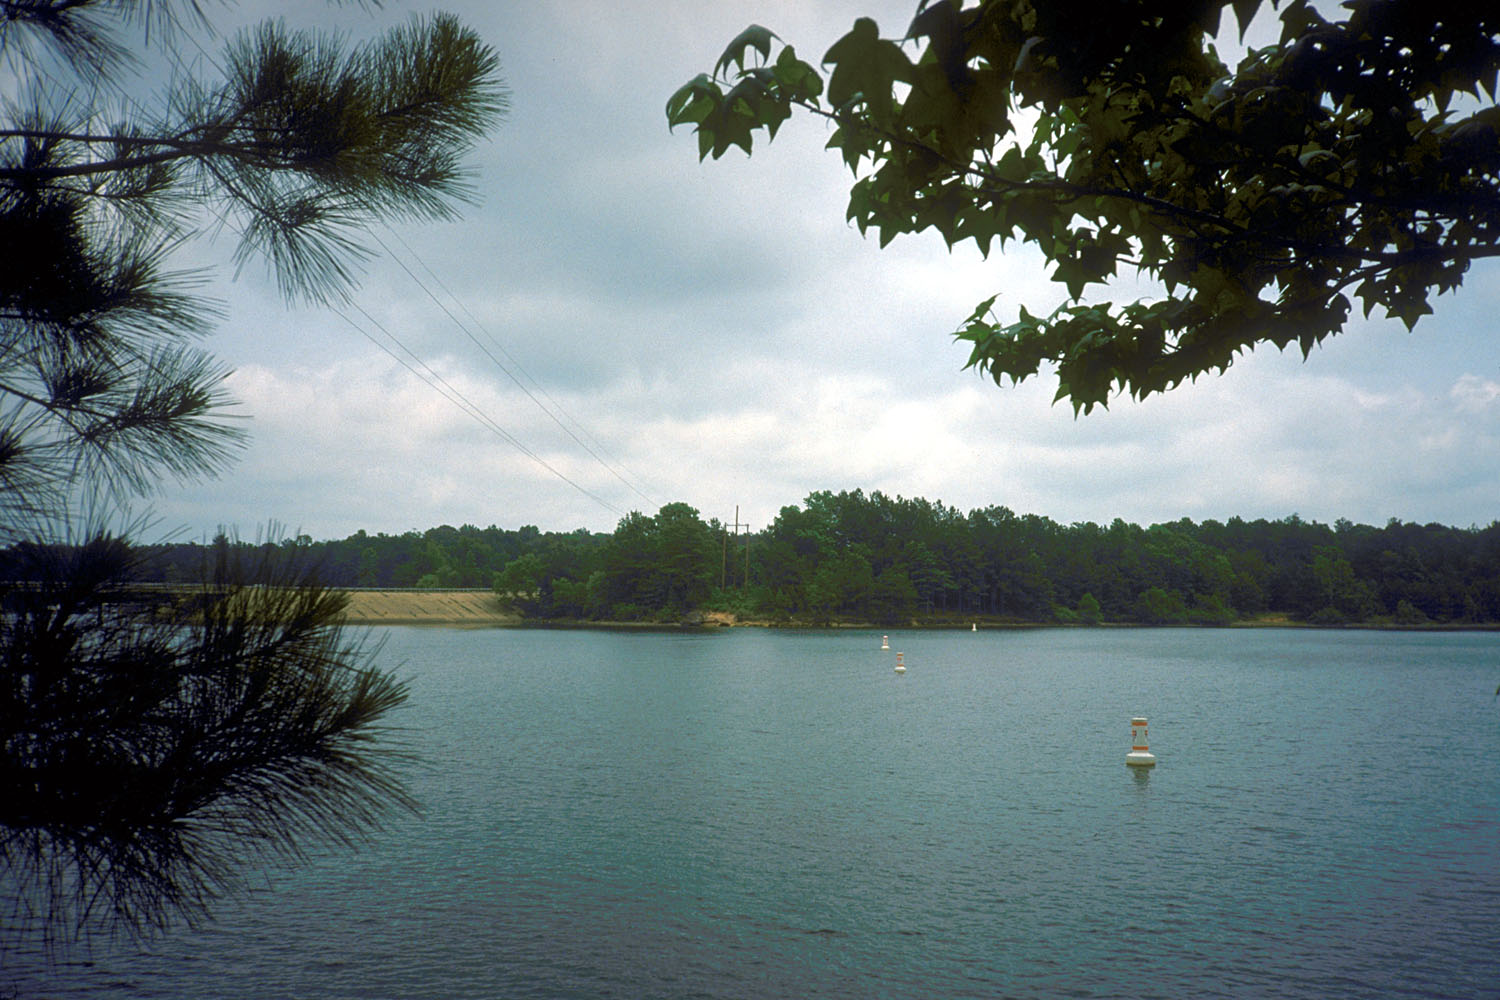 Lake O' the Pines in East Texas